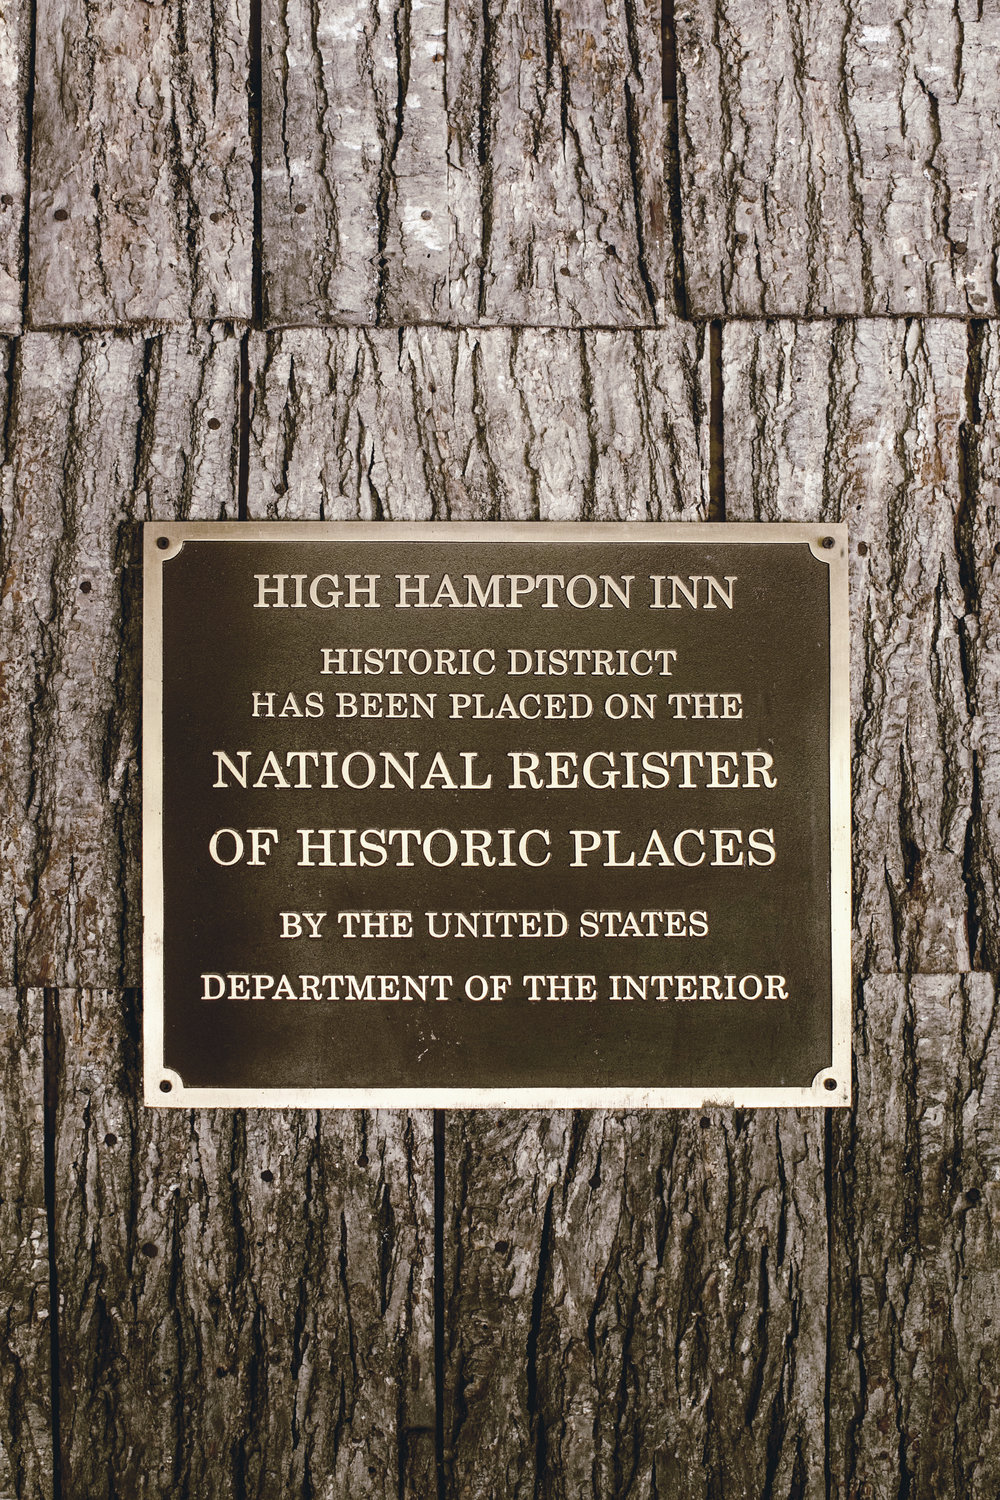 high Hampton inn / national registry of historic places / heirloomed